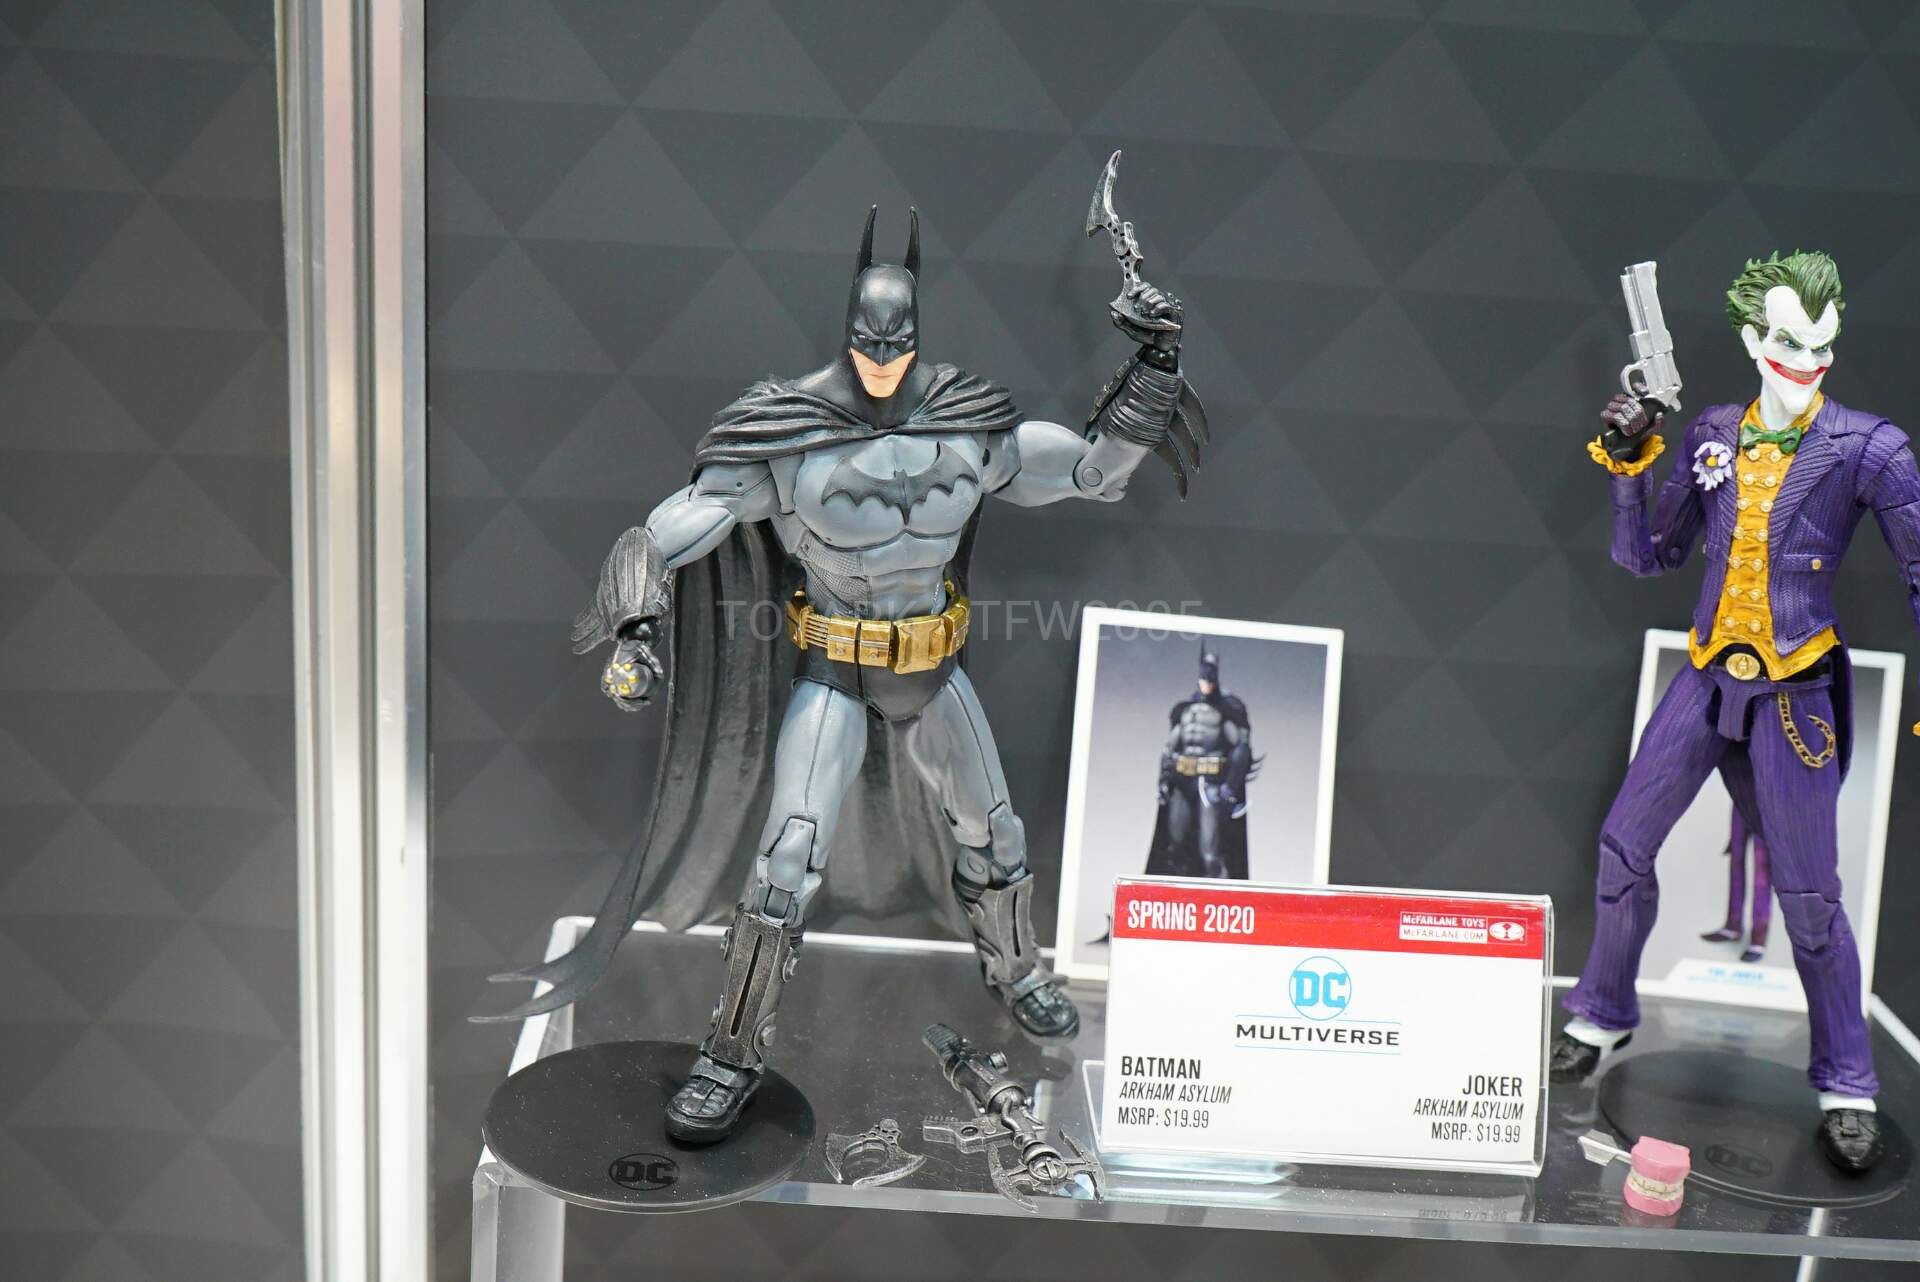 Toy-Fair-2020-McFarlane-DC-039.jpg